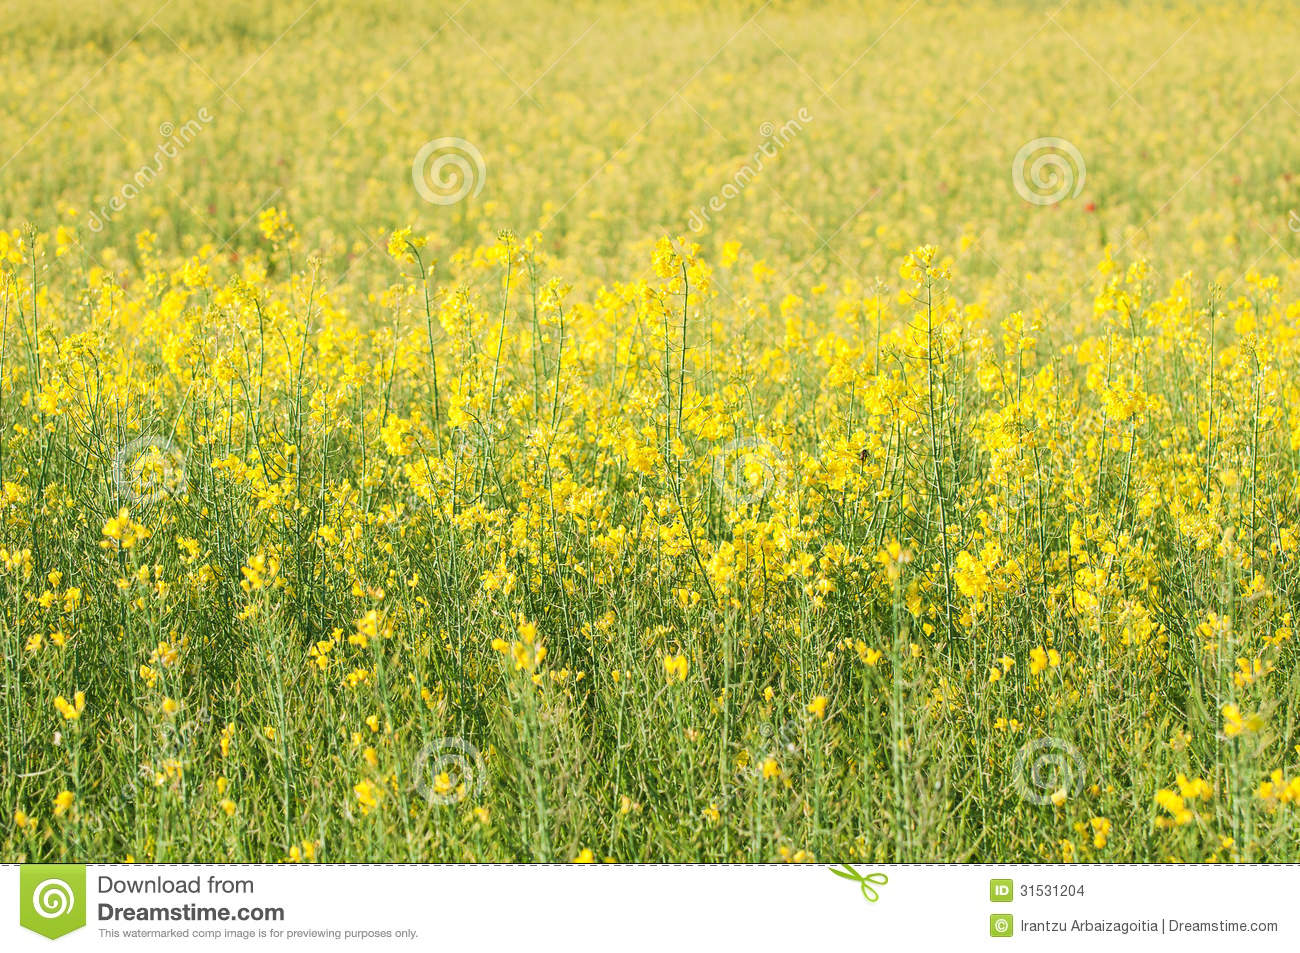 Rapeseed field full of yellow flowers stock photo image of rapeseed field full of yellow flowers mightylinksfo Images